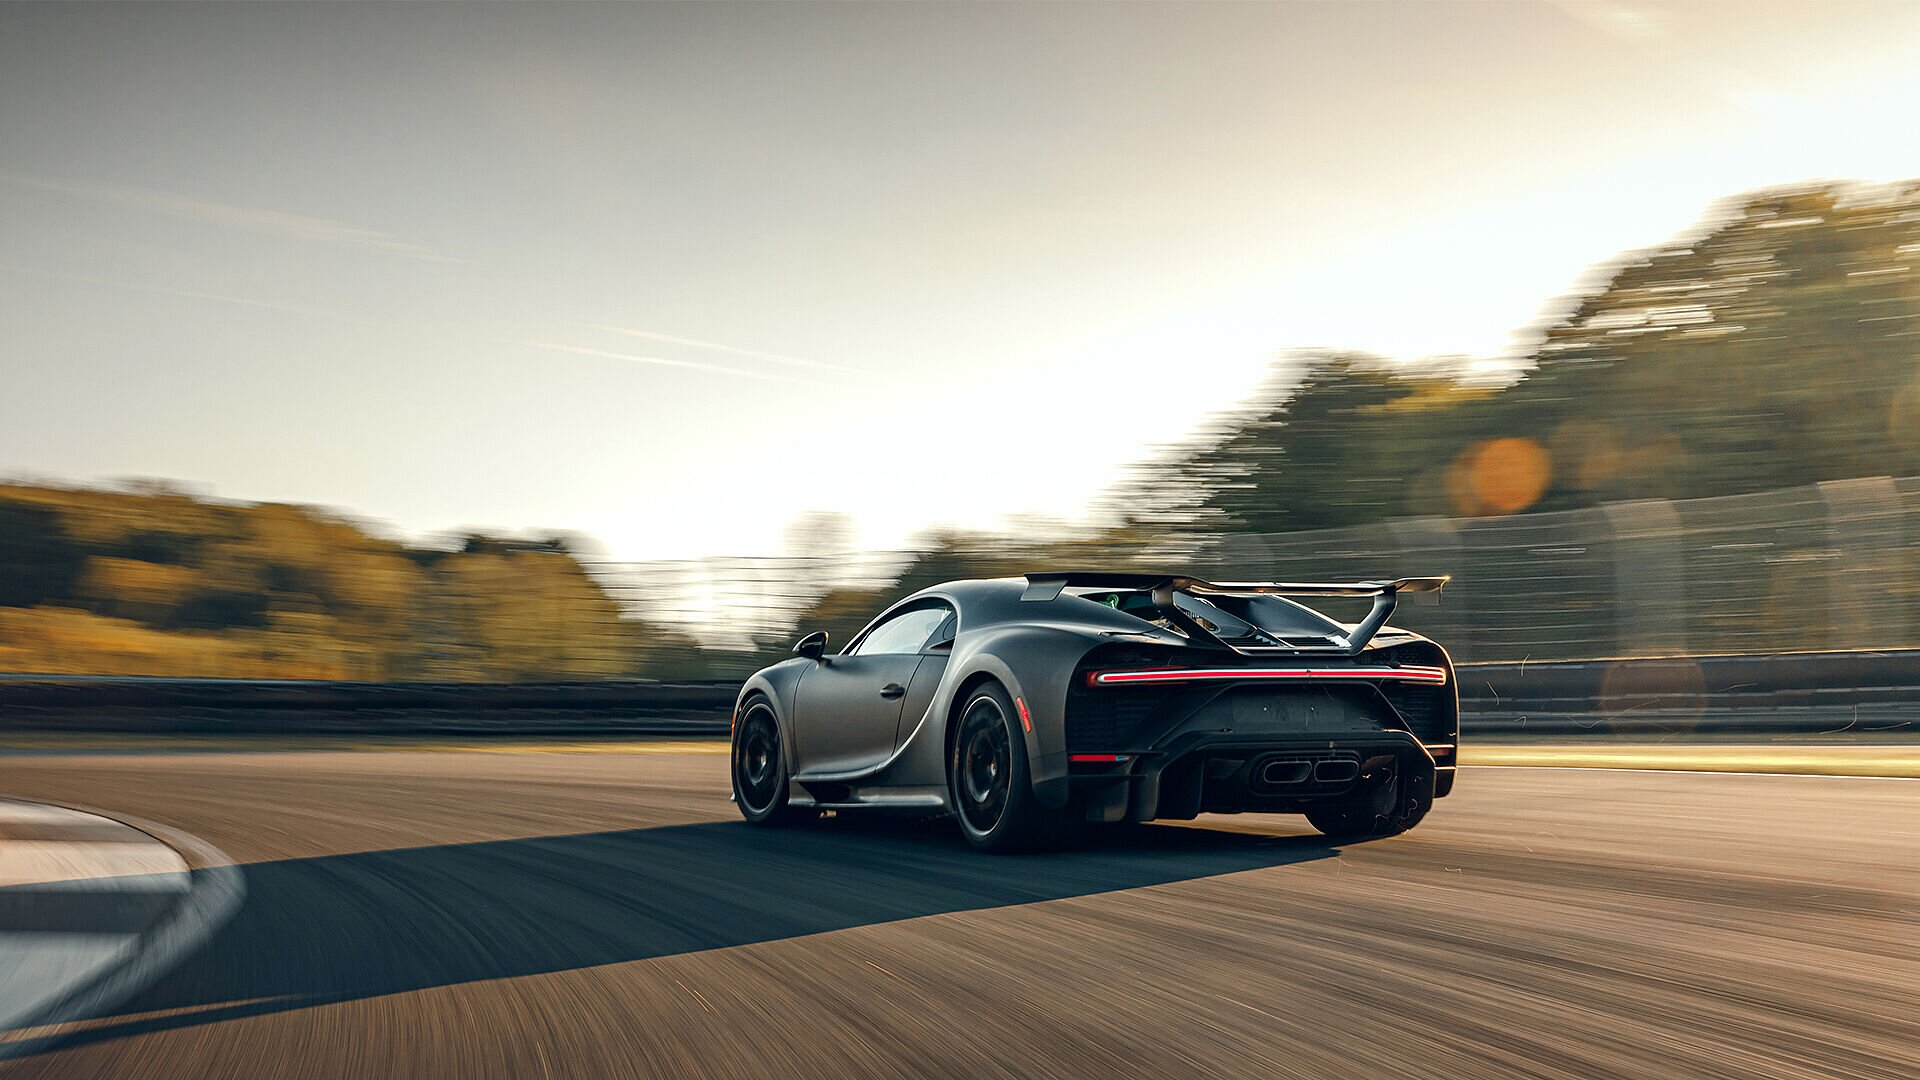 Fine-tuning the Chiron Pur Sport on the test track - Image 3